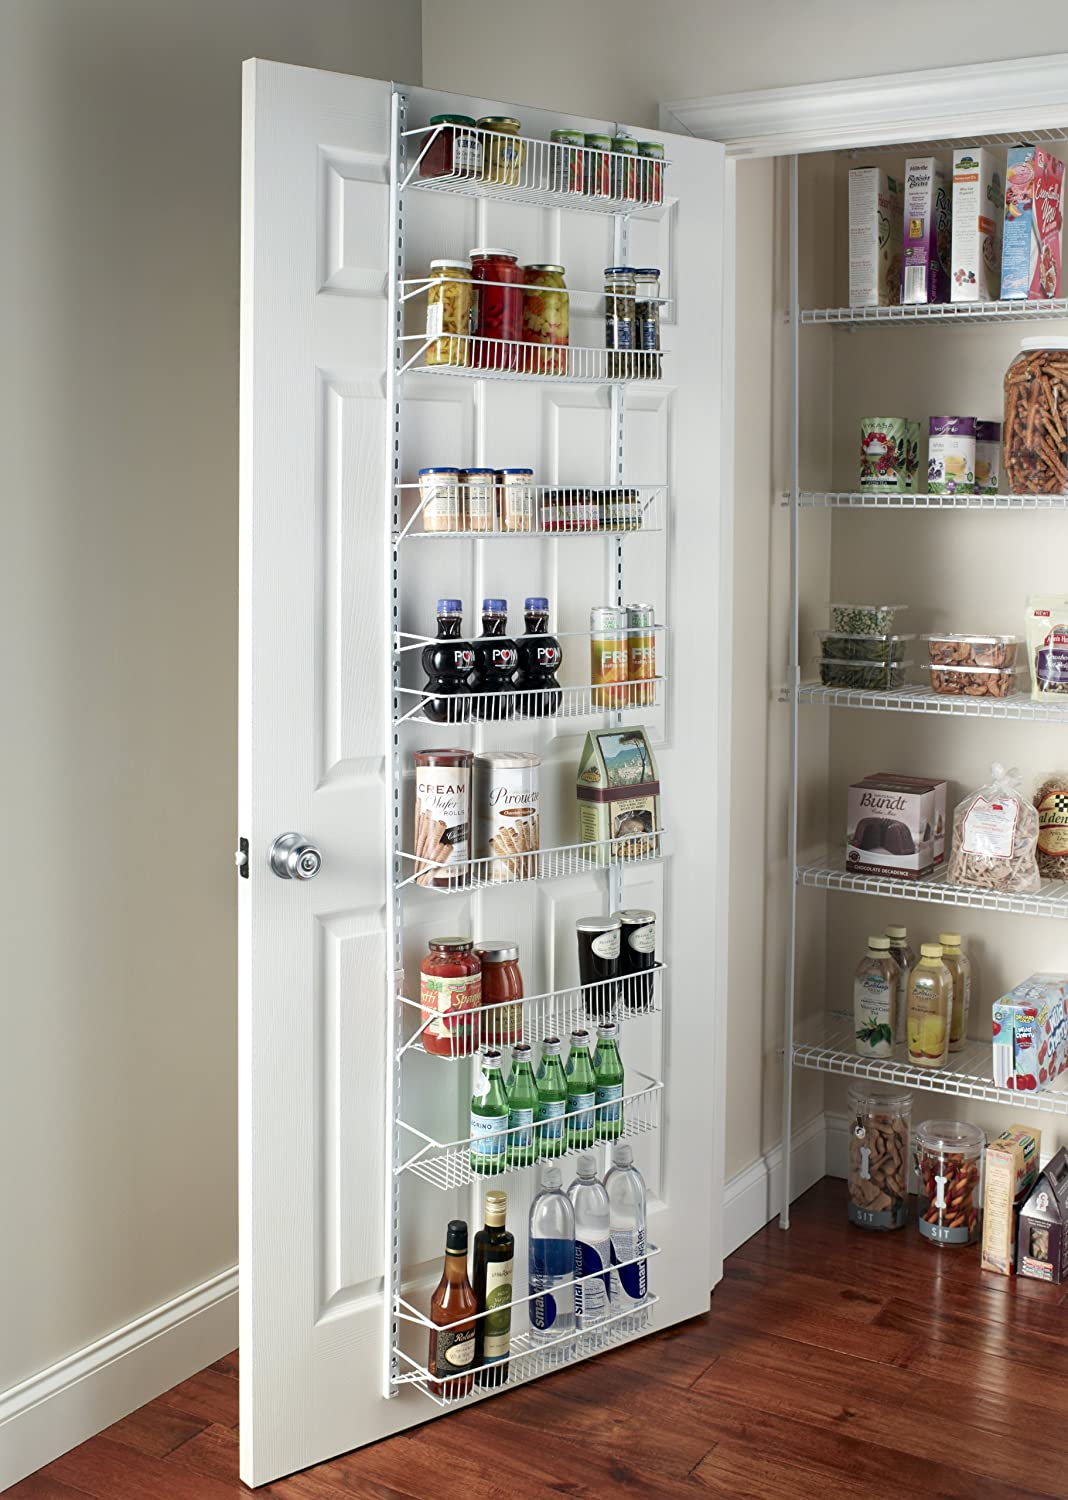 Wall Rack Closet Organizer Pantry Adjustable Floating. Upper Cabinets For Laundry Room. Drop In Laundry Room Sinks. Baseball Room Designs. String Room Divider. Sitting Room Colour Schemes. Dining Room Pool Table. Kids Room Idea. Fun Games To Play In Your Room